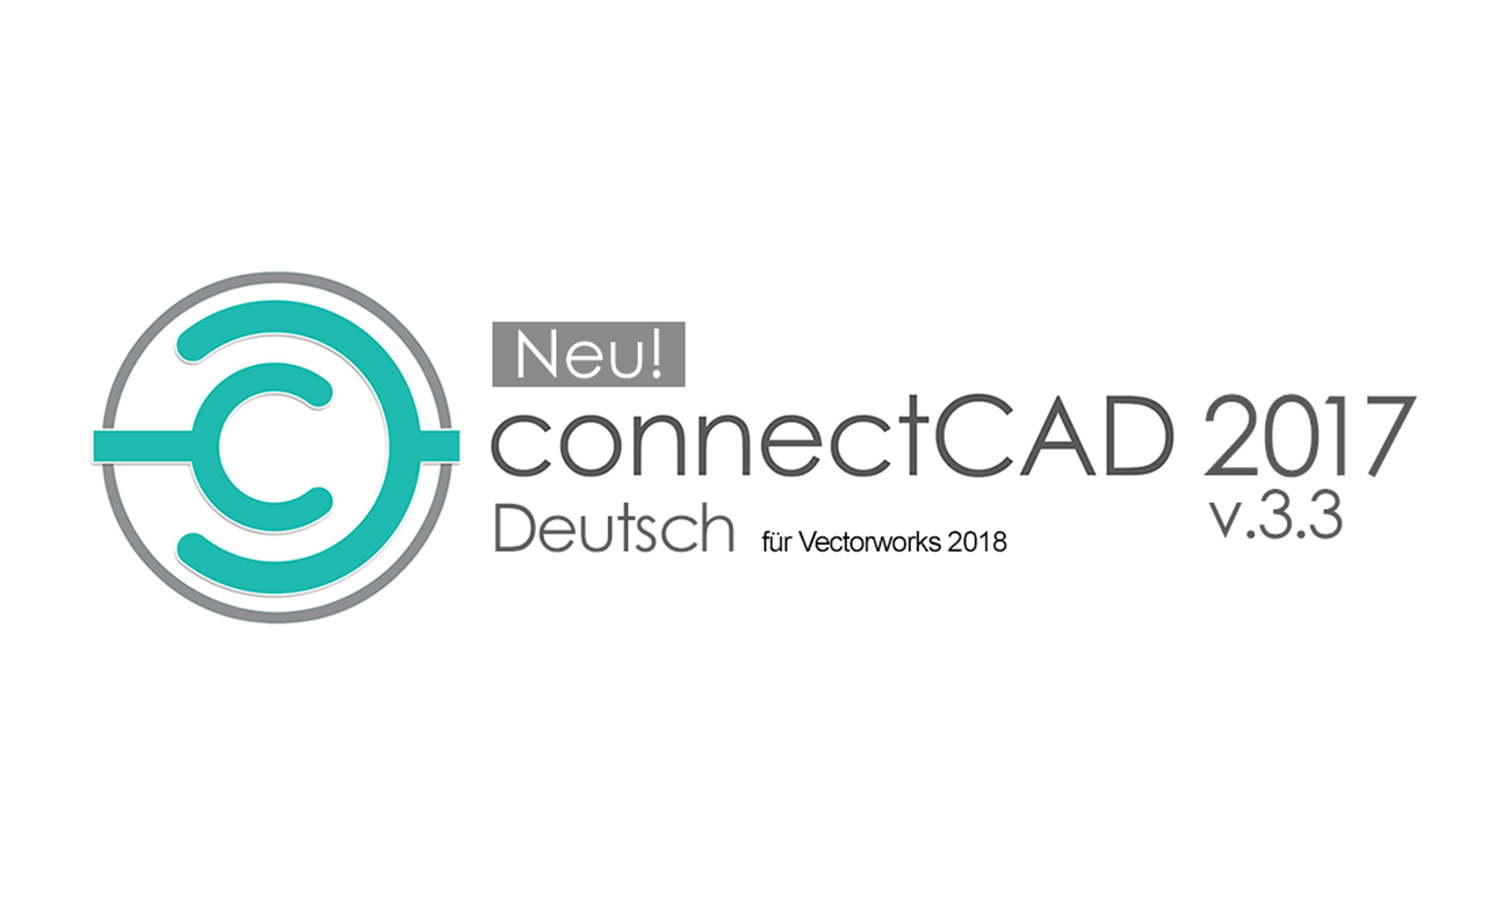 connectcad2017 v.3.3 Deutsch for Vectorworks 2018 Deutsch